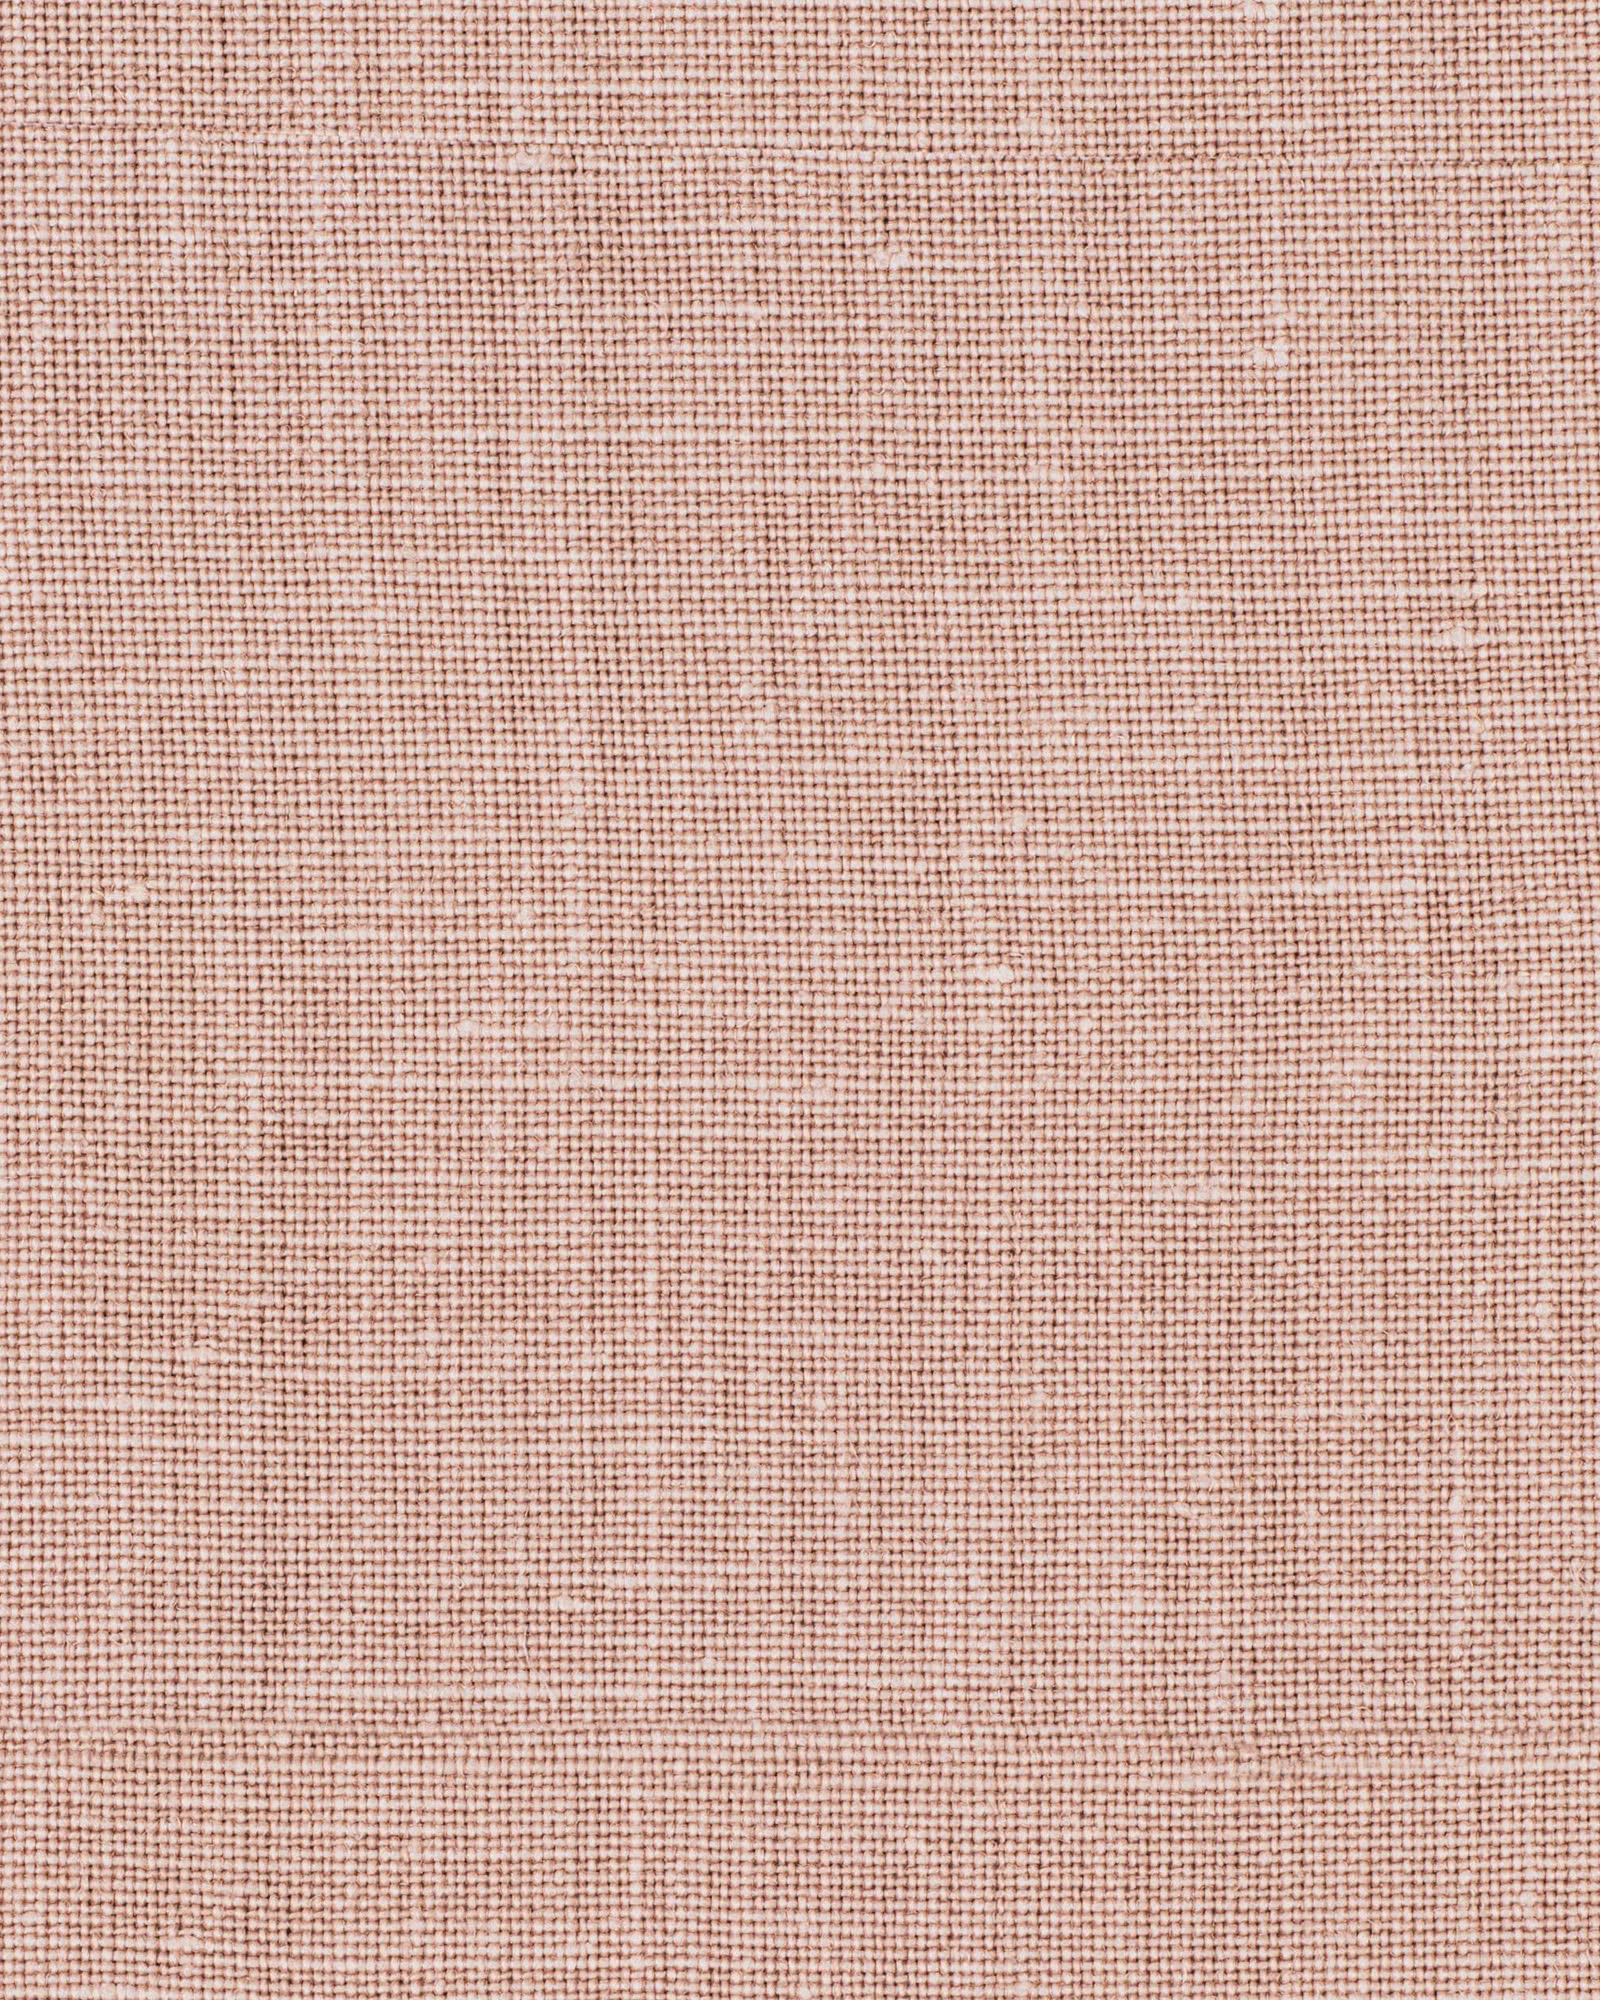 Washed Linen Fabric Serena Amp Lily